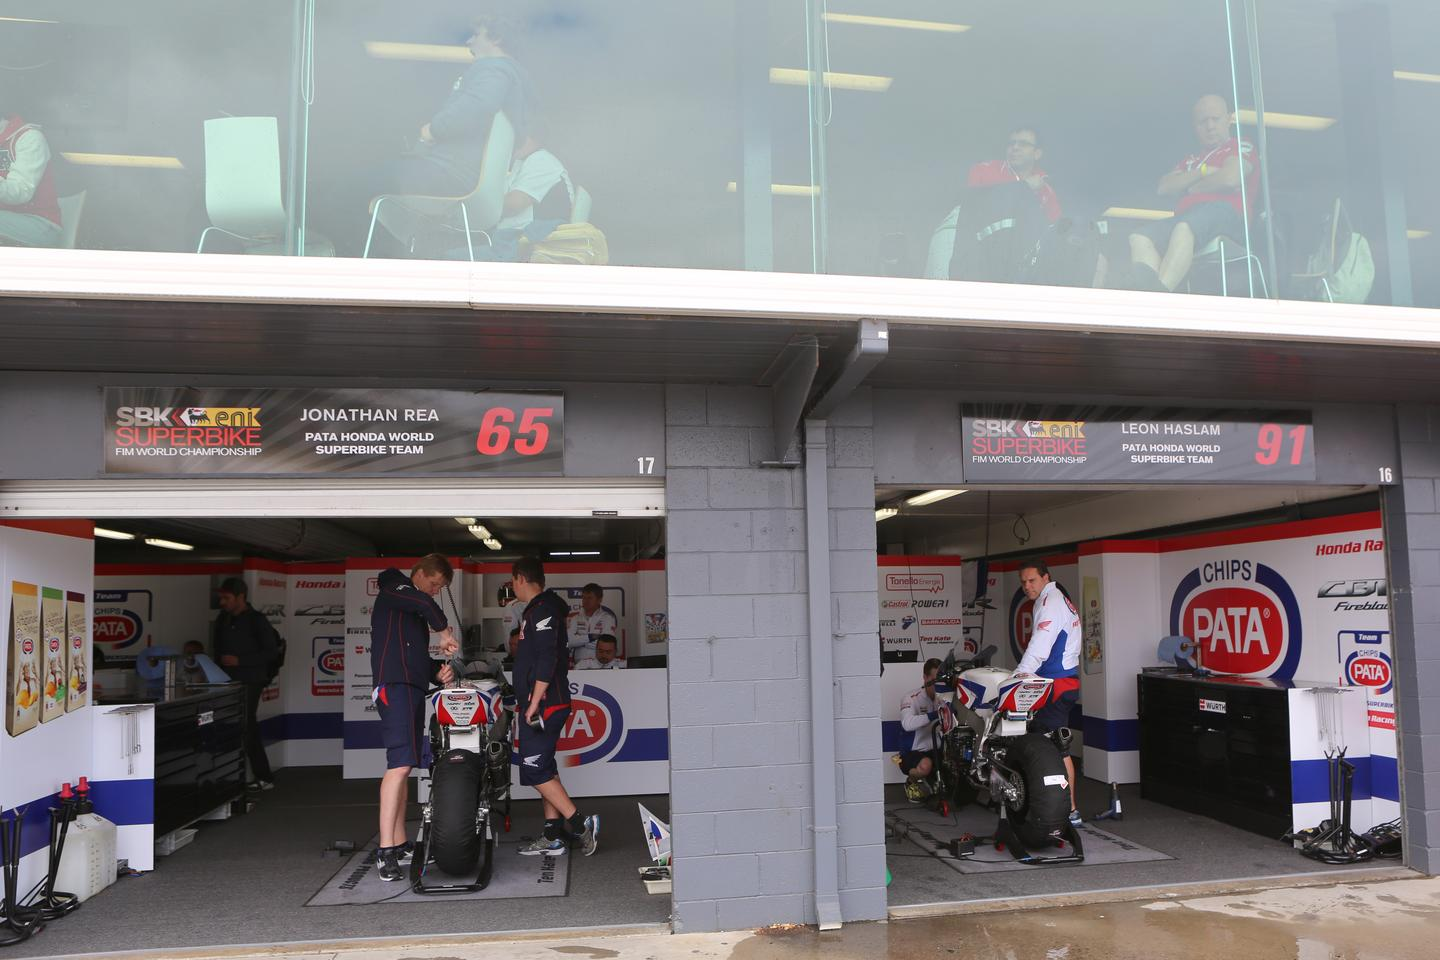 Honda's PATA World Superbike team below, and Honda corporate hospitality above